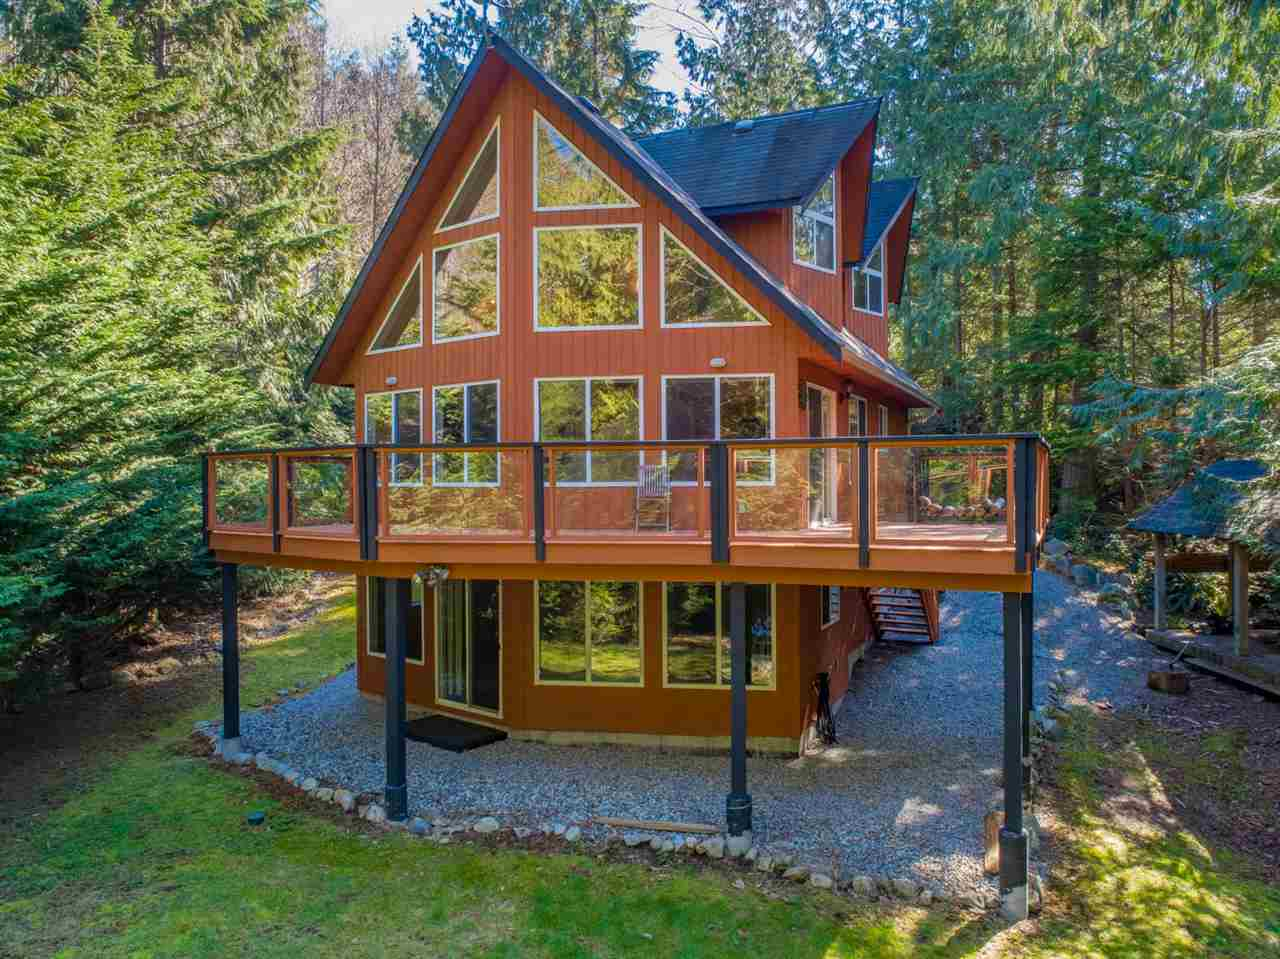 This home has been freshly painted/stained on all the exterior and decks & some interior making it move in ready condition. The home is nestled in mature trees including cedars giving that country setting location that everyone wishes to escape to. With 2/3 of an acre & a trout bearing creek this makes an ideallic setting yet only 20 minutes from Sechelt and all its amenities. If you like to go boating, Secret Cove is a mecca with its many different marinas. You have a quick boat ride to Thormanby and the sandy beaches or kayak around to Smugglers Cove. The upstairs of this home is a dedicated master suite. The main living is all about the kitchen dining and 2 storey vaulted ceiling of the living room & its faux rock fp. Downstairs has suite potential with a large rec room, bedroom & bath